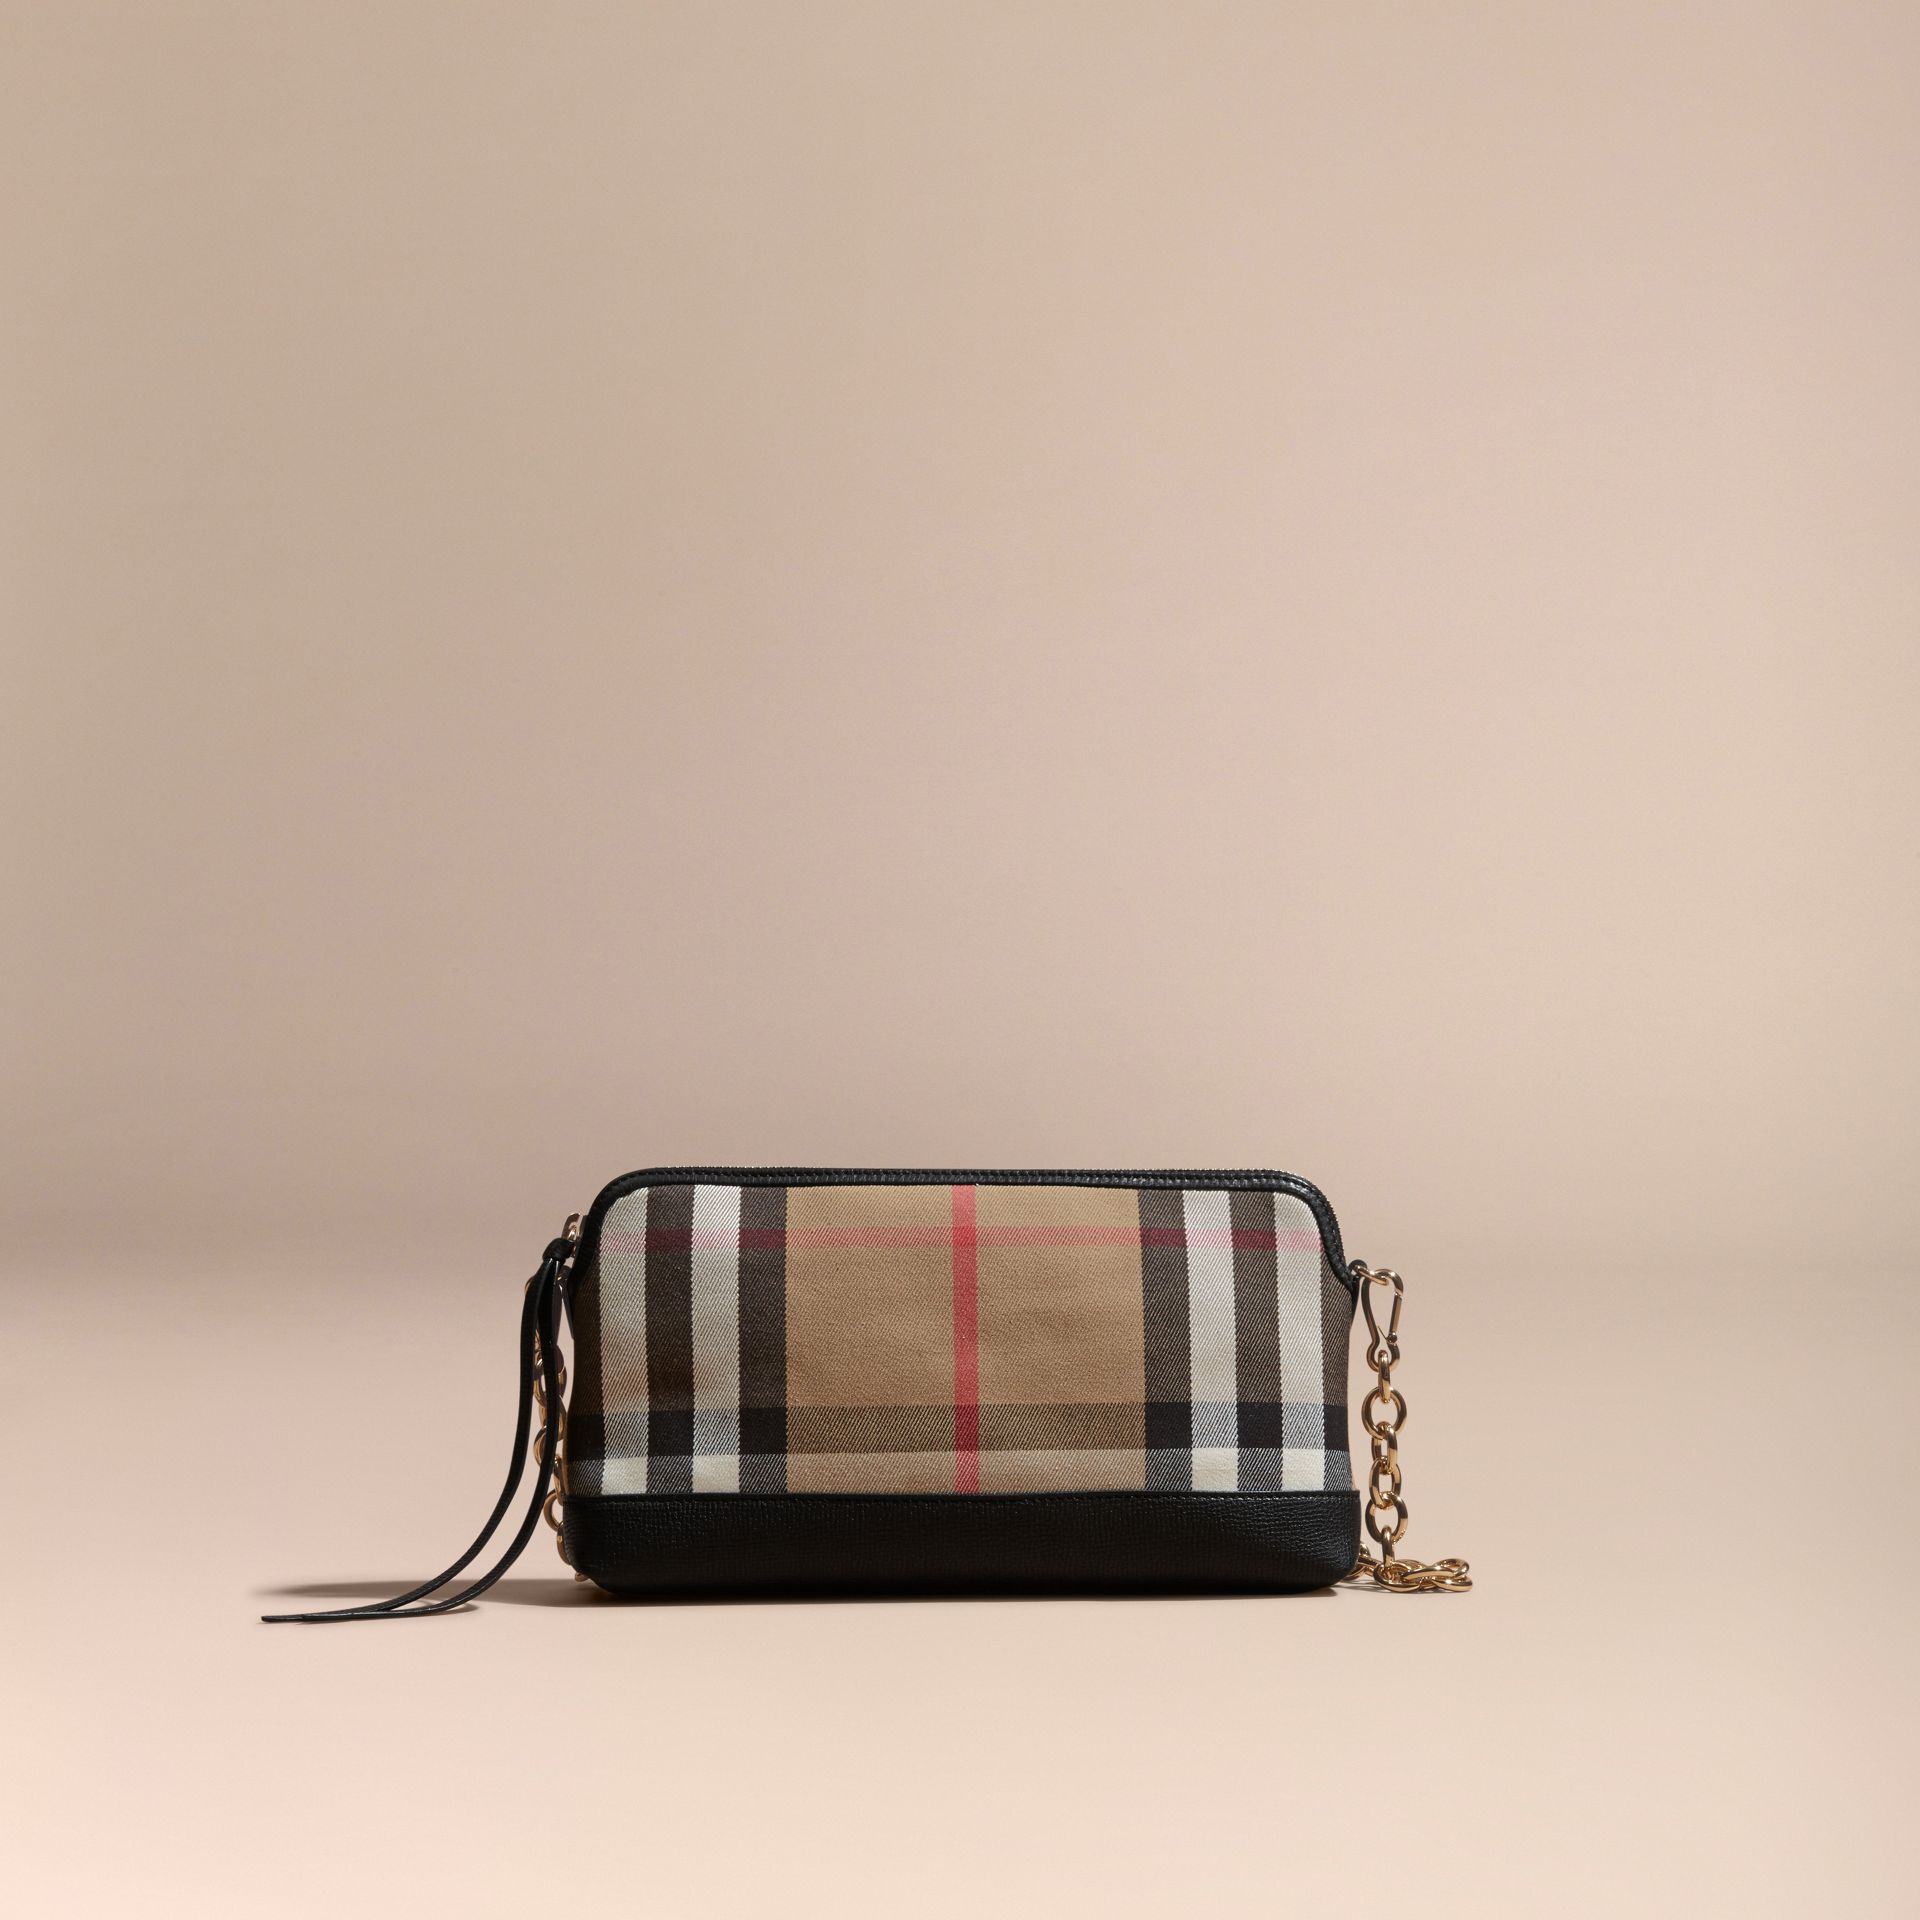 Black House Check and Leather Clutch Bag Black - gallery image 9